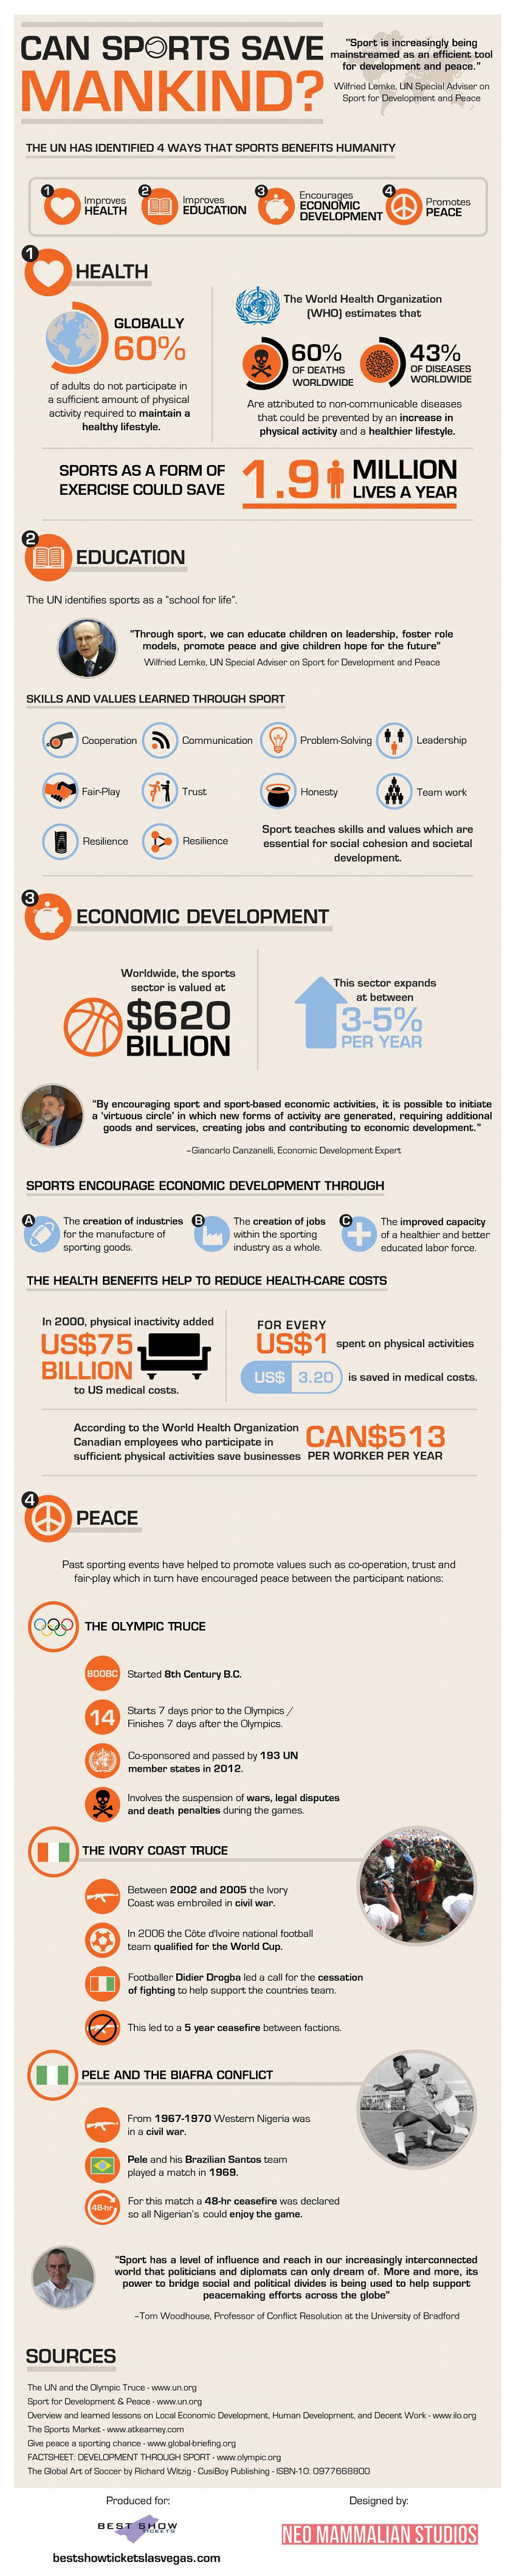 Sports for Humanity-Infographic